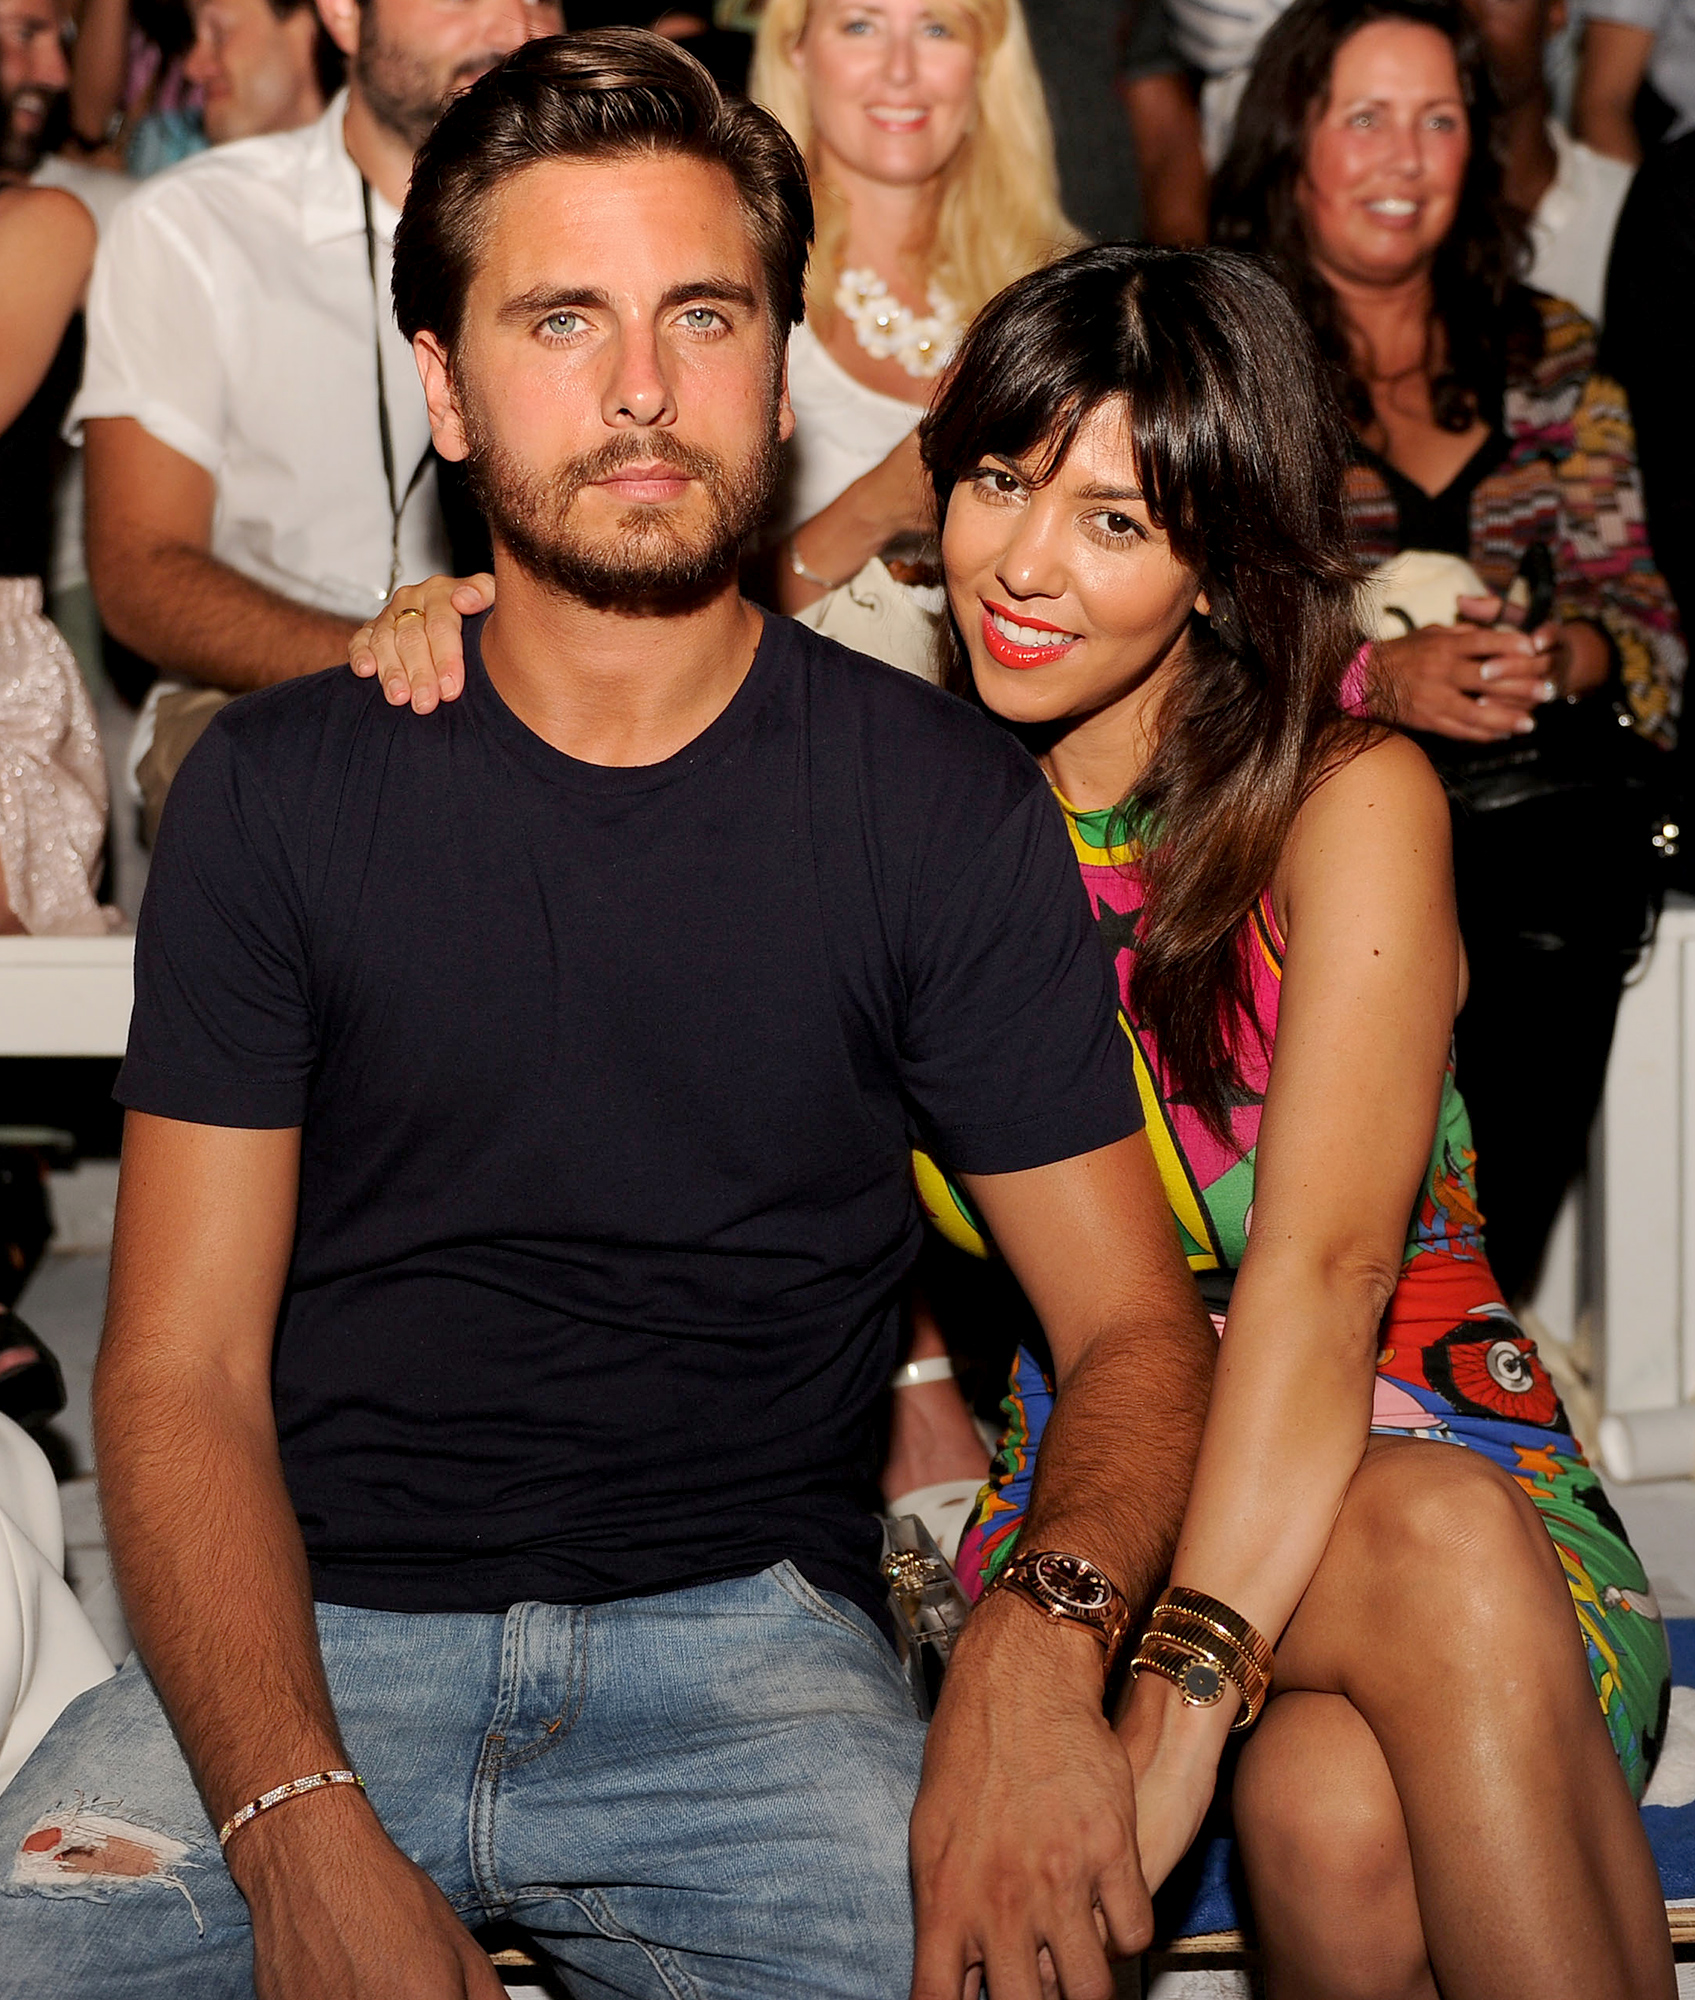 Caitlyn Jenner Wants Kourtney Kardashian and Scott Disick to Get Back Together 2